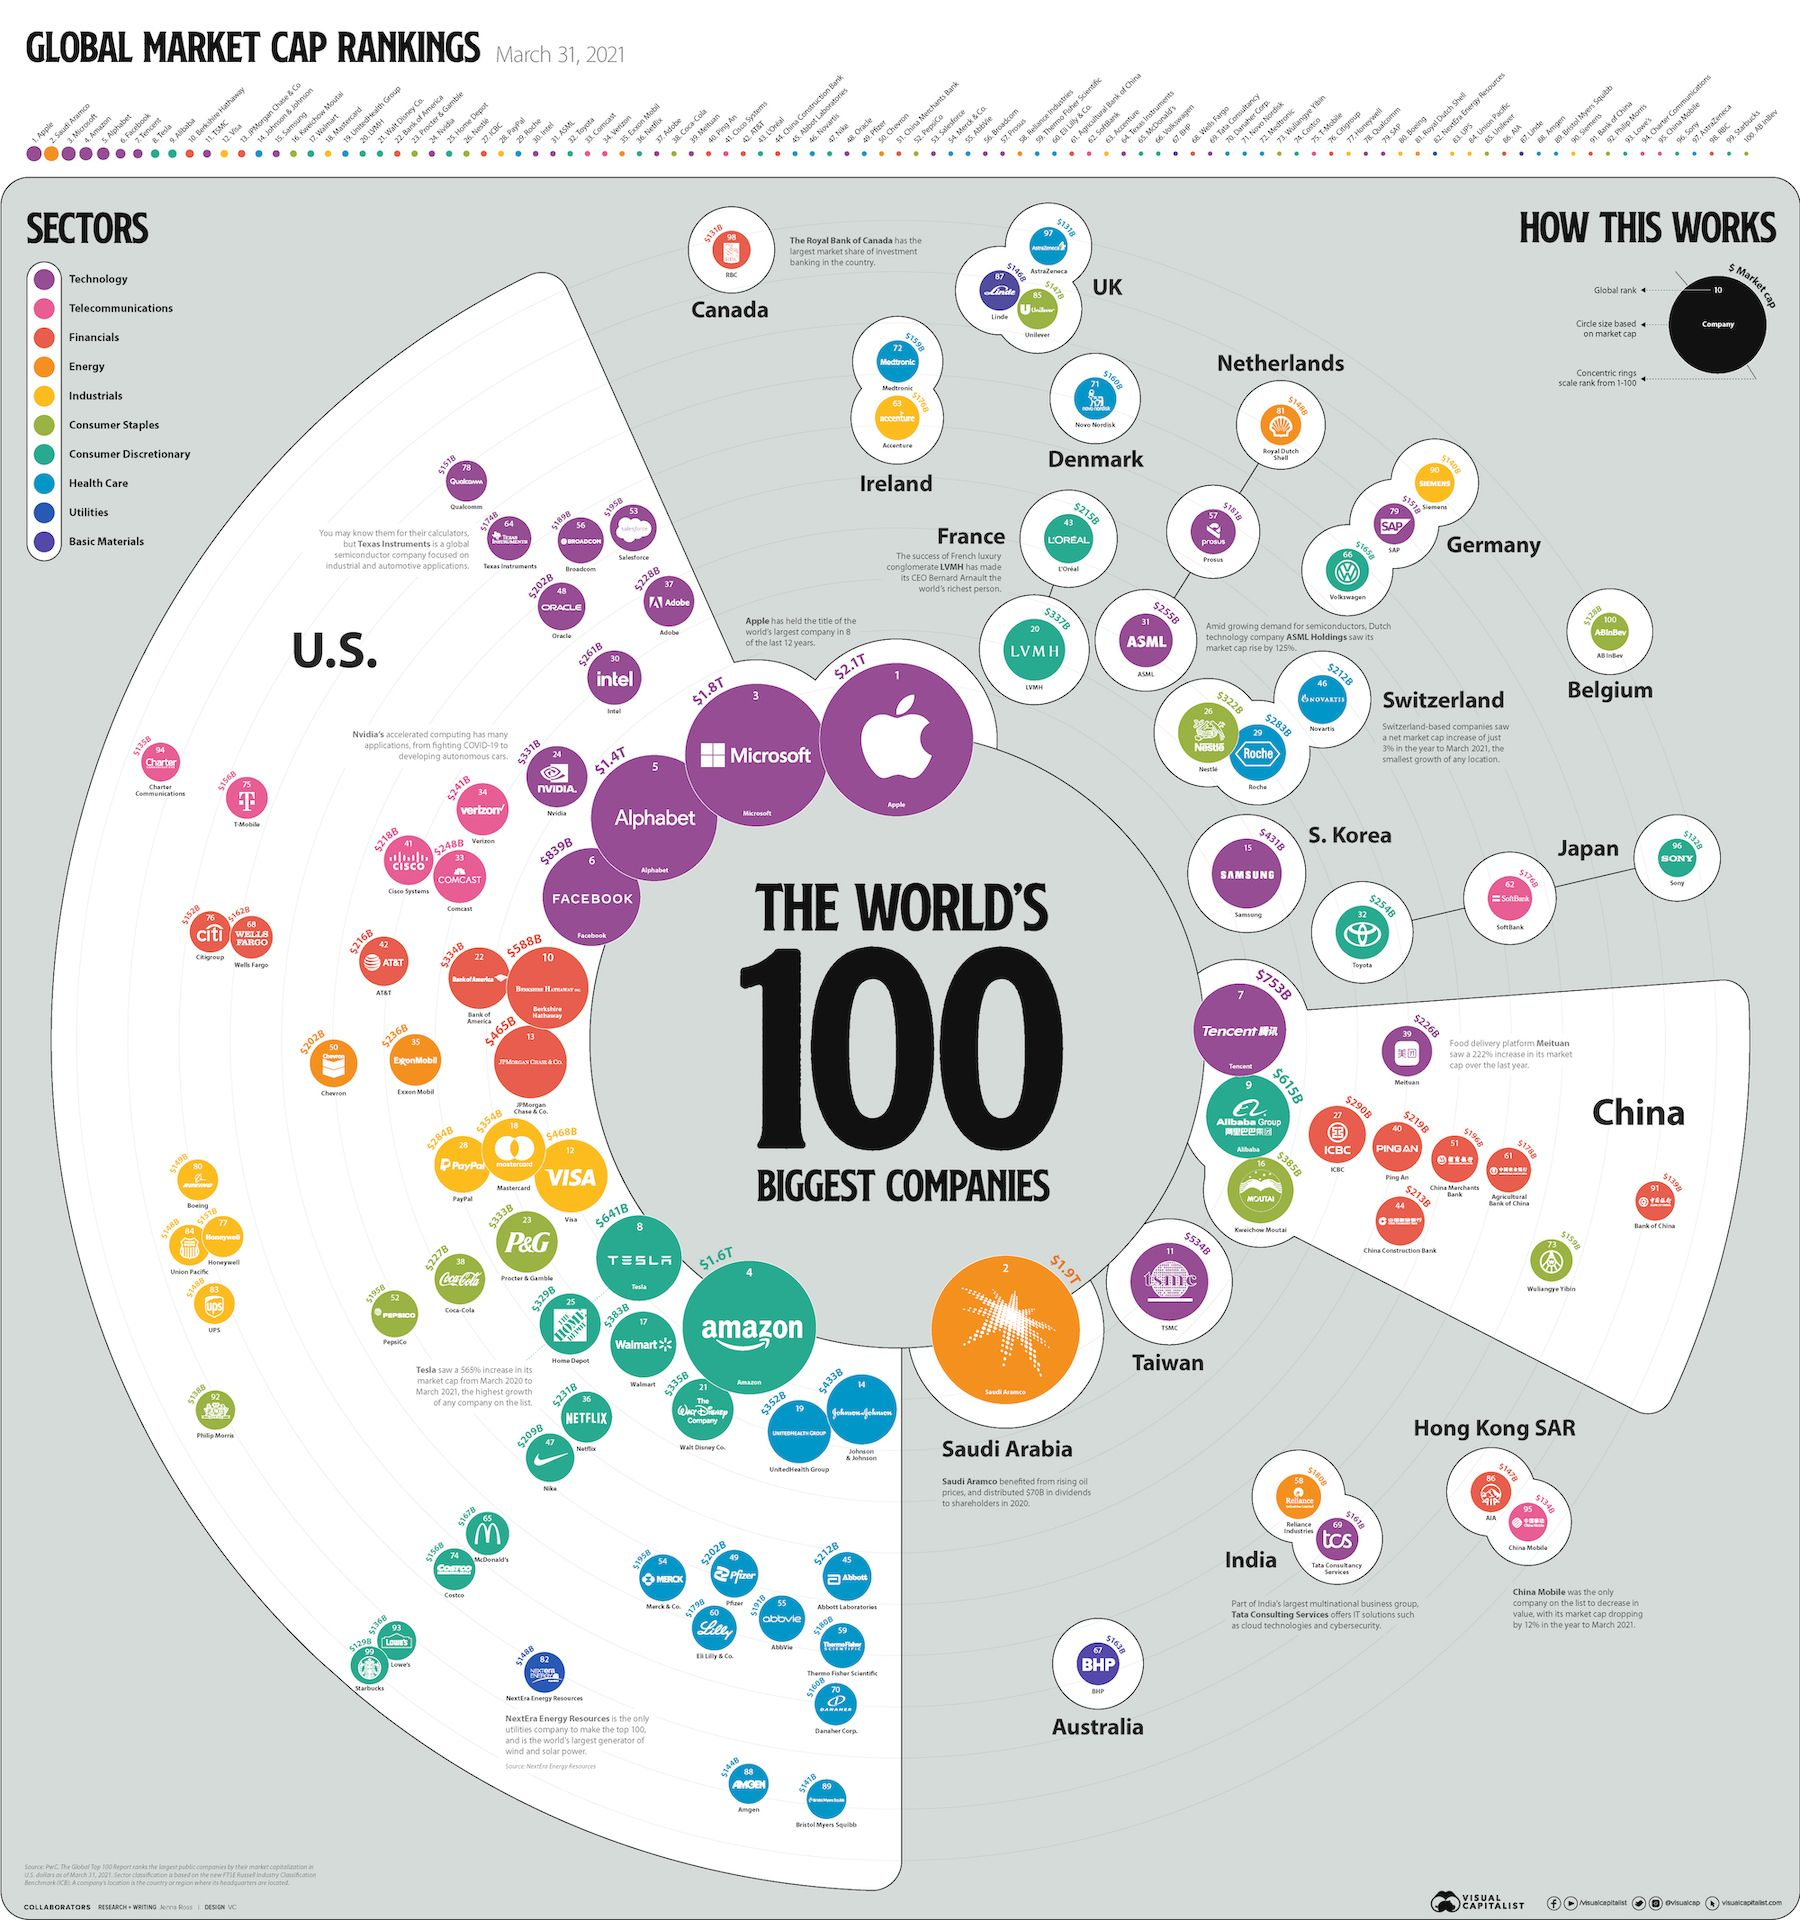 Biggest-Companies-in-the-World_Full-Size.jpg